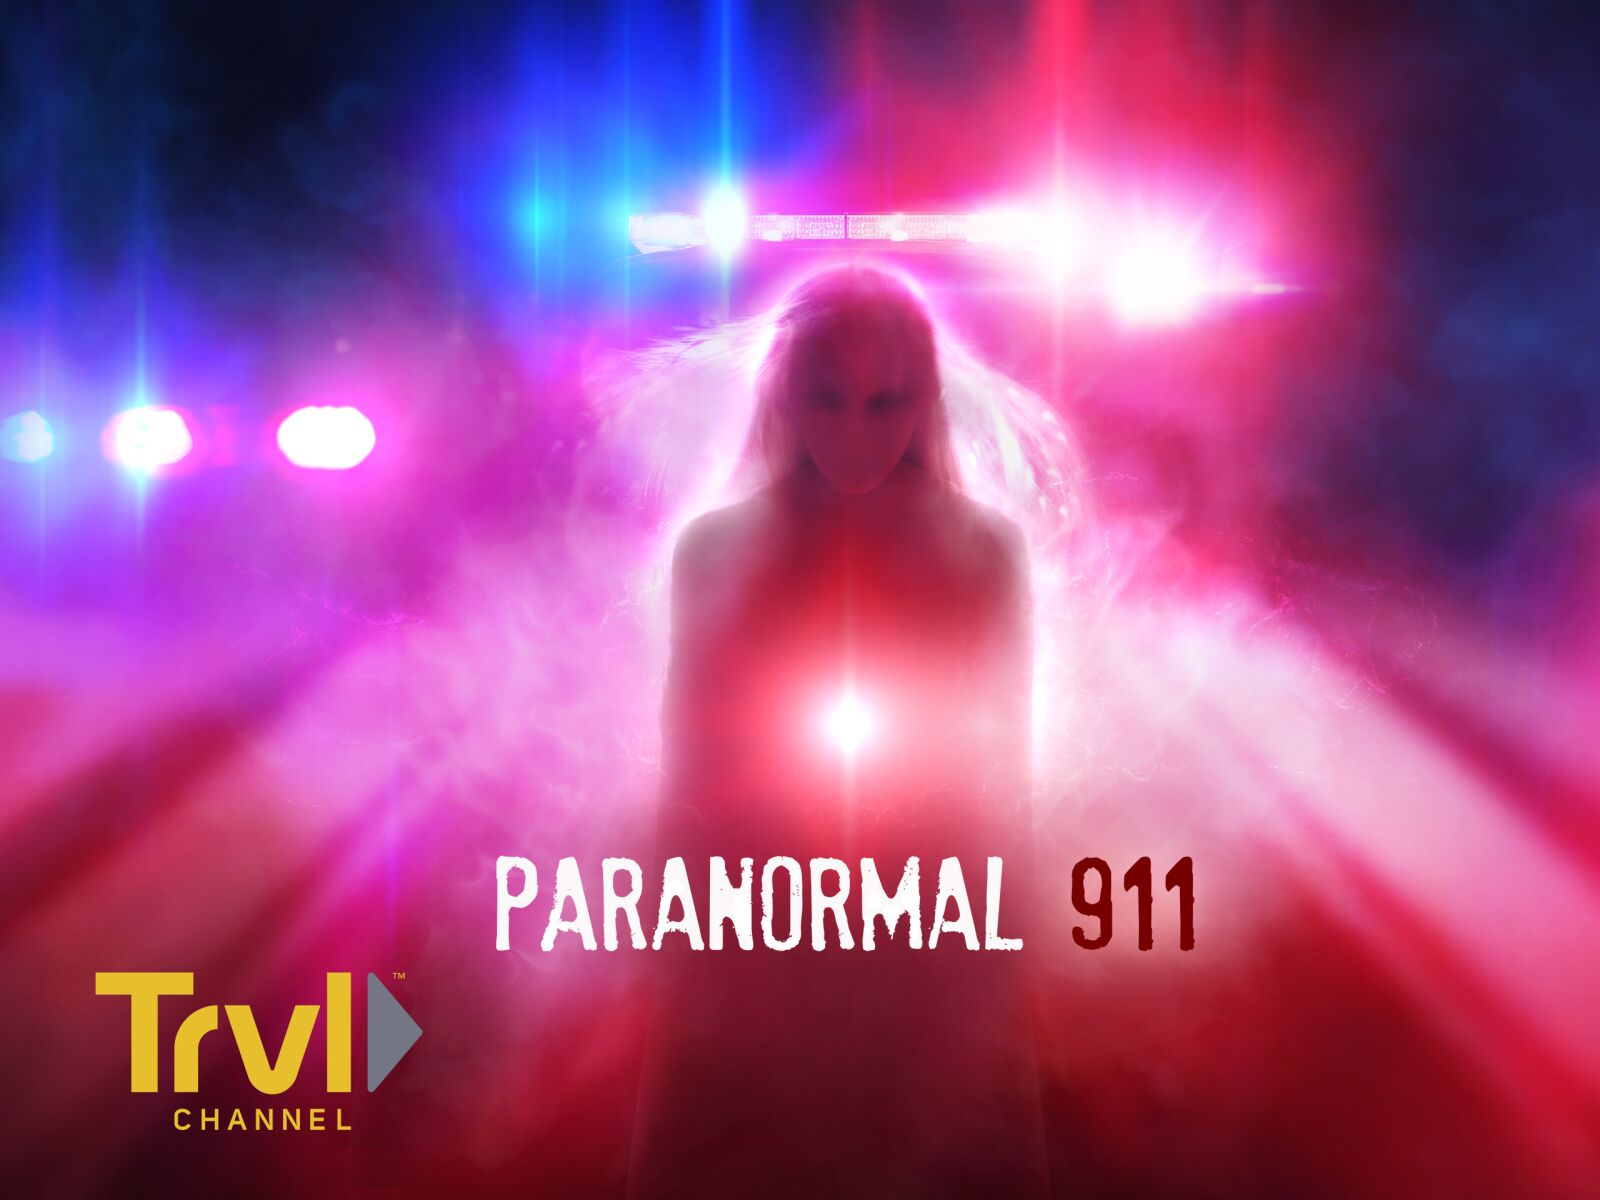 Travel Channel: Paranormal 911 dials up the terror for a new season